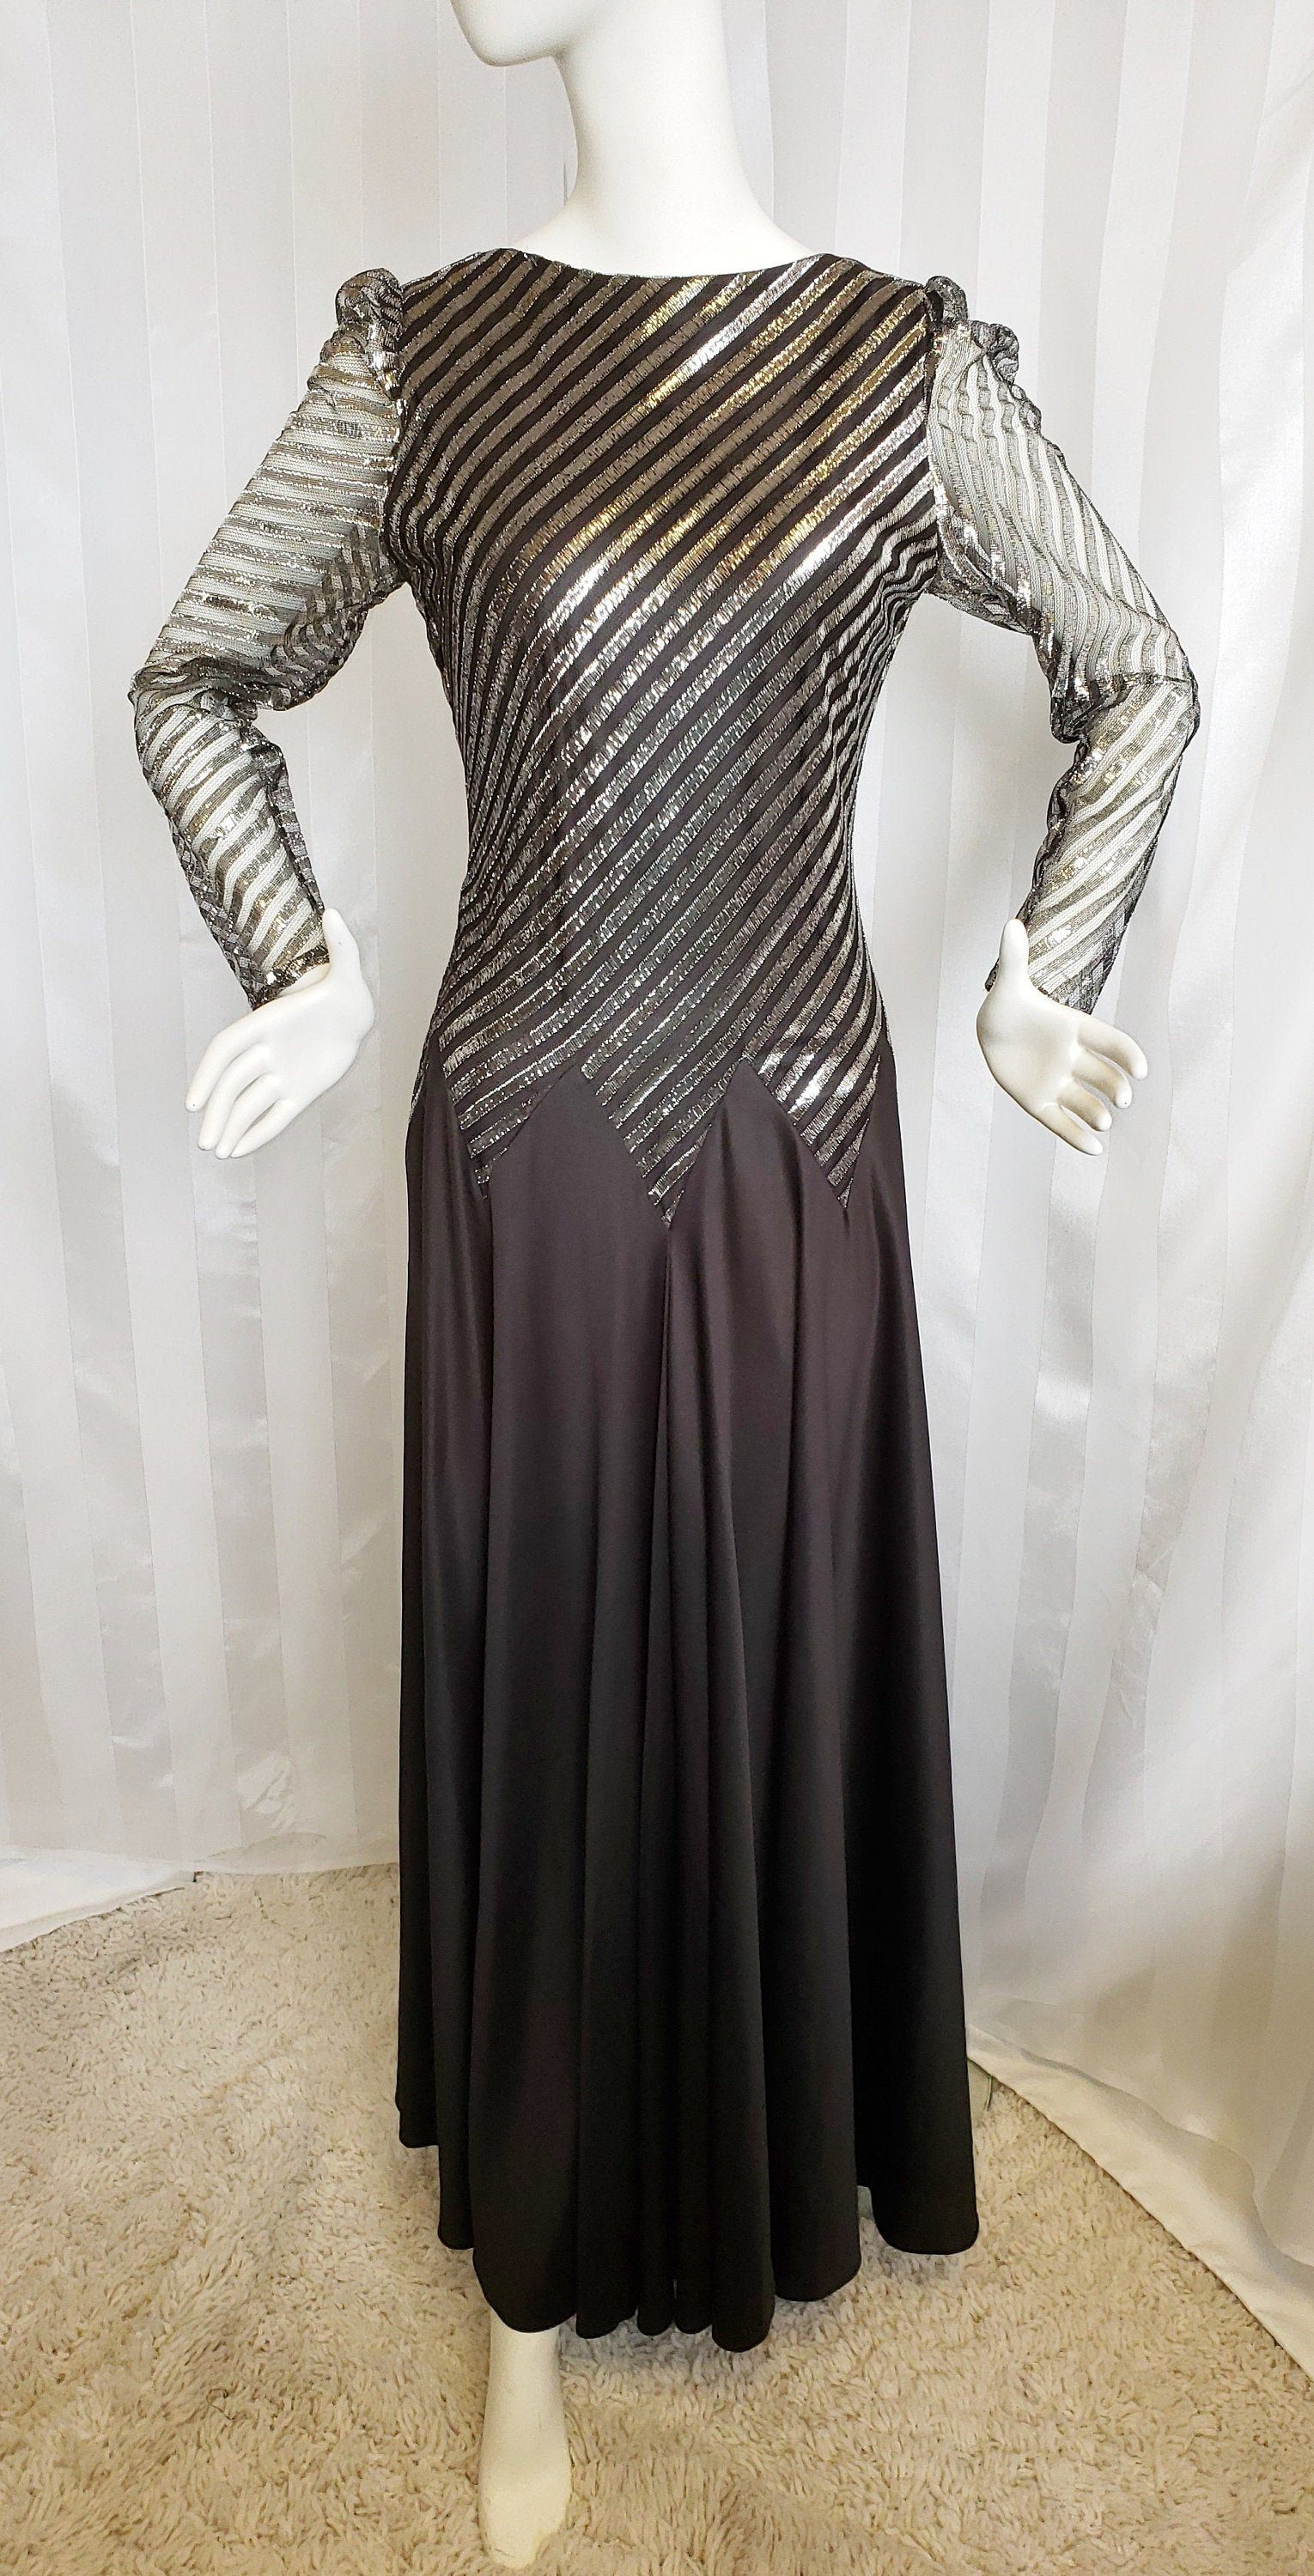 Ginger Rogers-Style Glamour Gown #GlamourGirl #BallroomDress